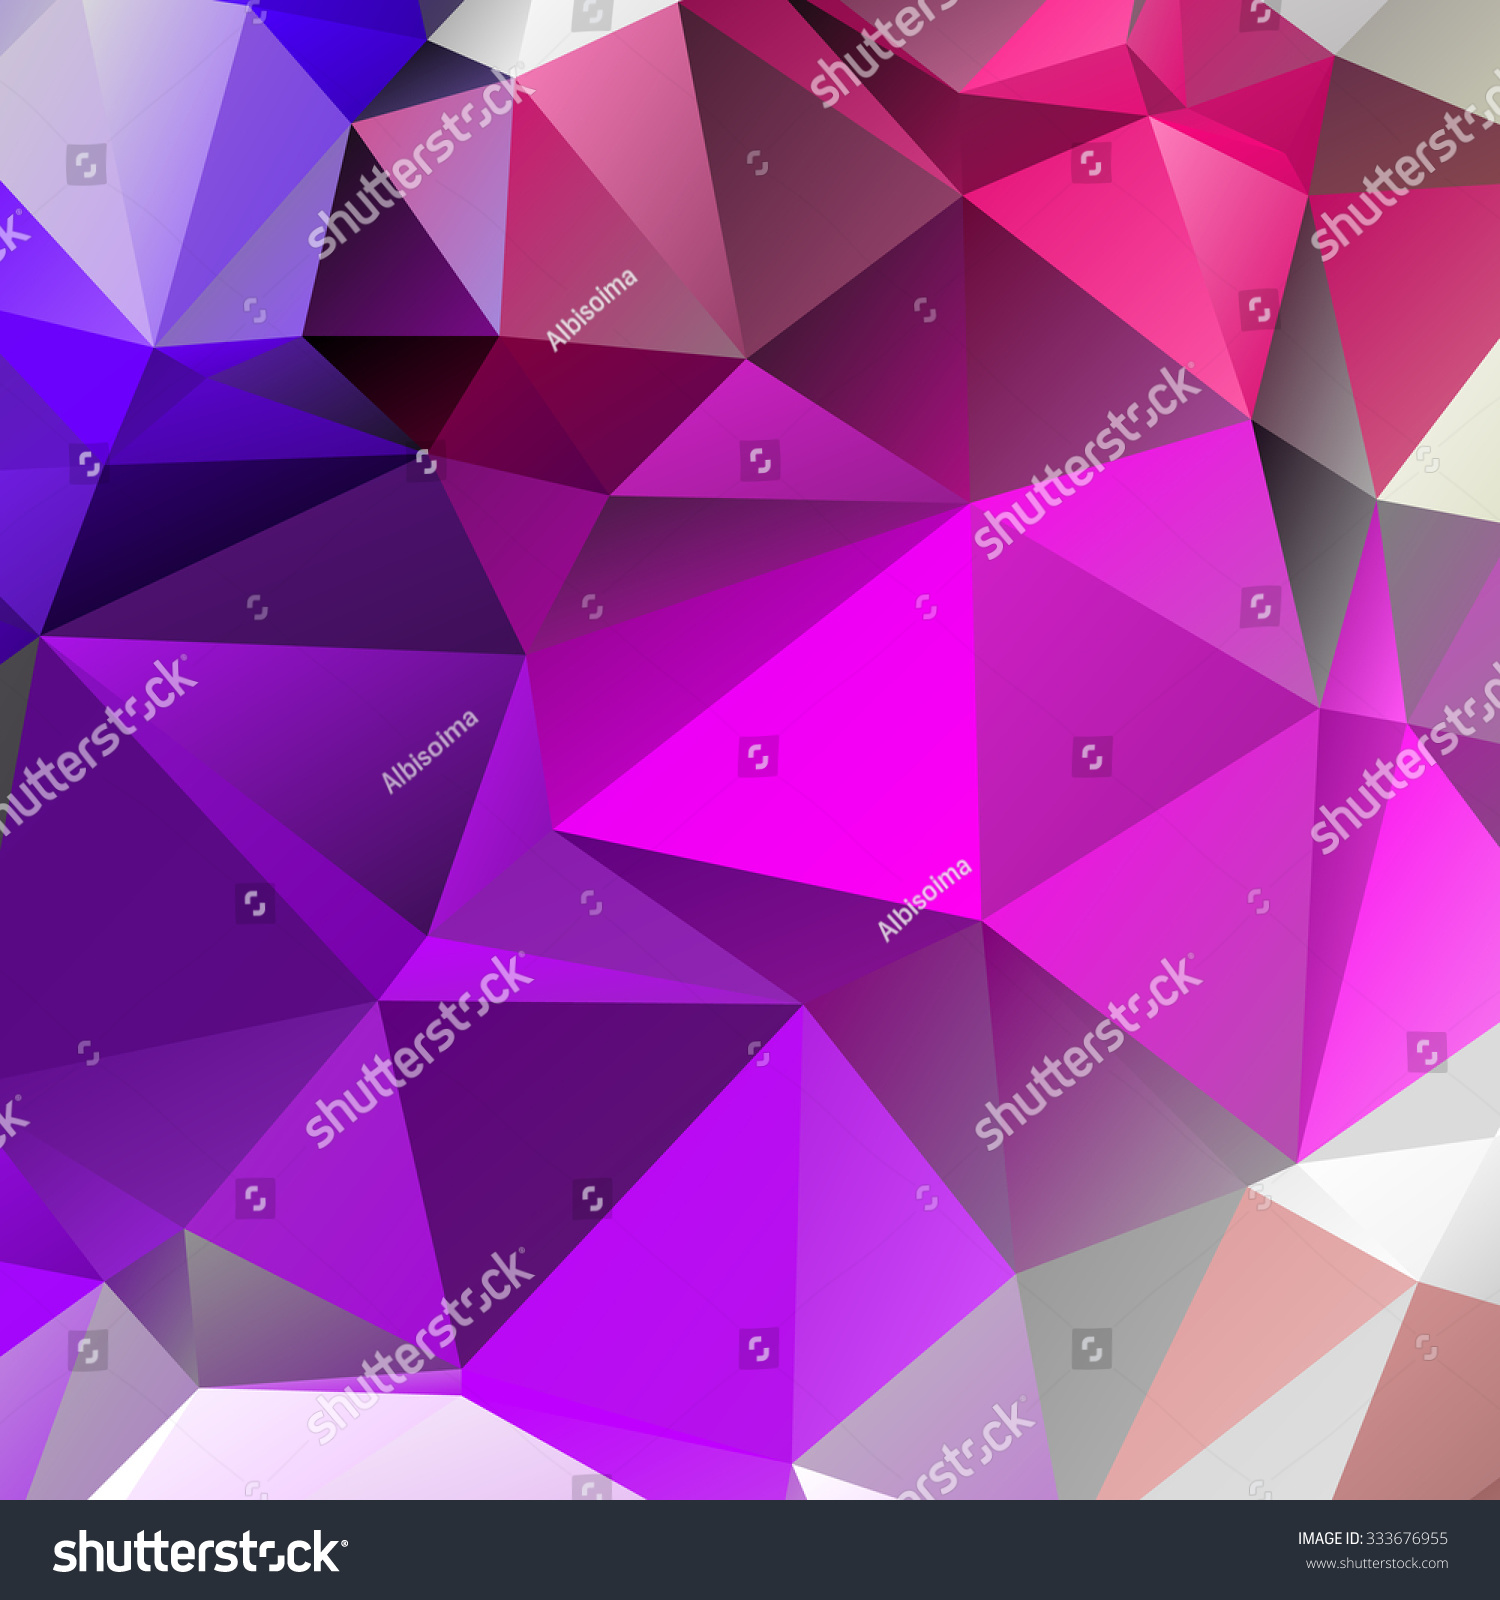 Light purple wallpaper pattern - Abstract Sharp Mauve Wallpaper With Triangular Pattern